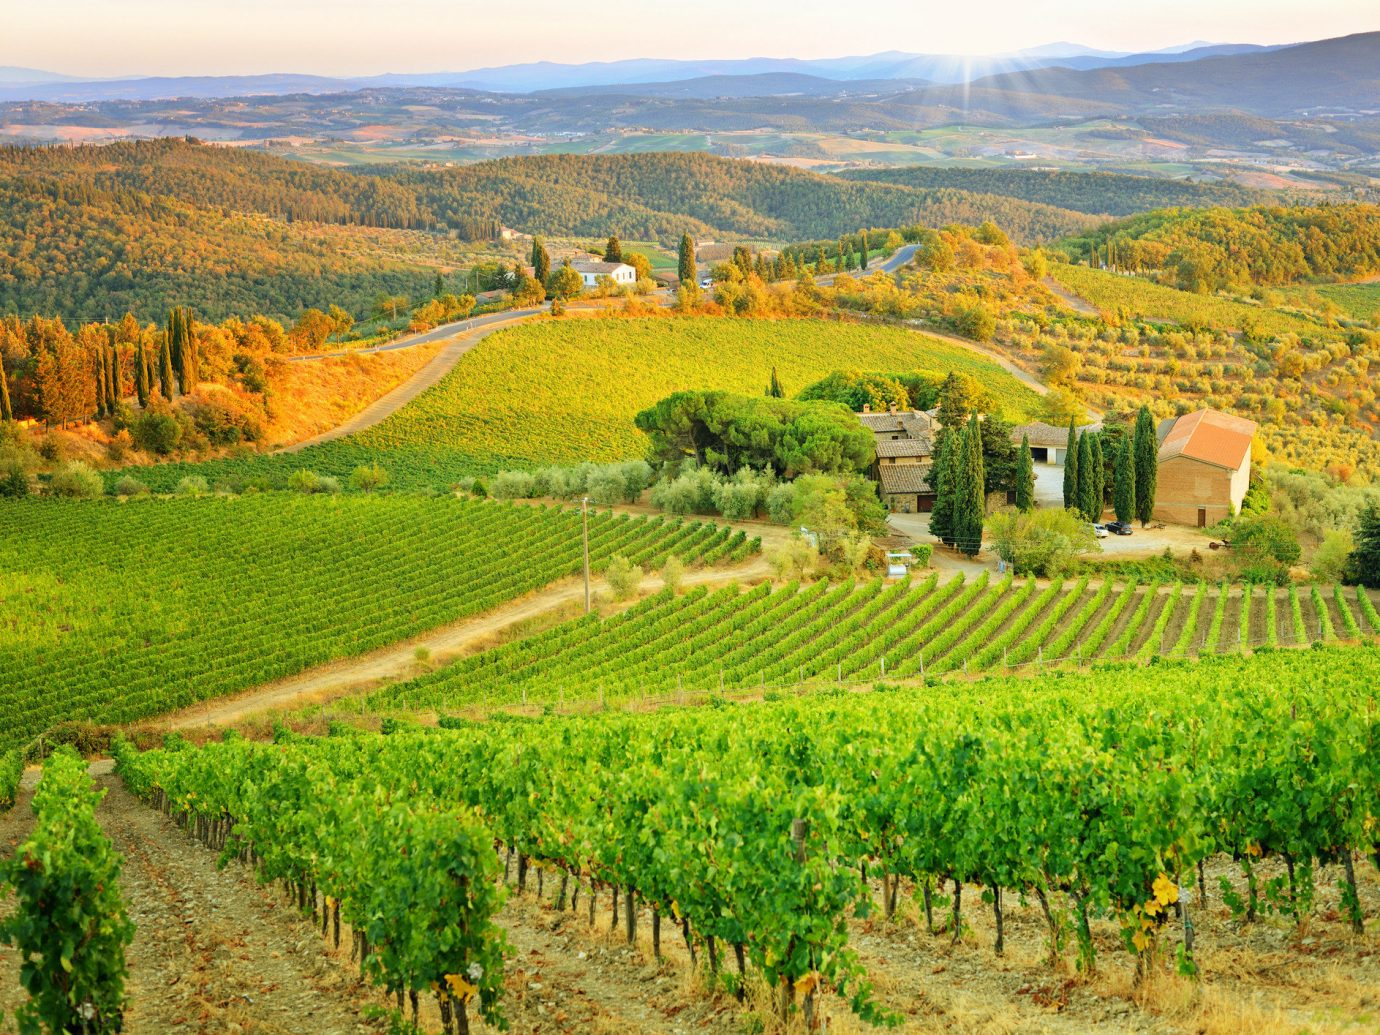 Italy Trip Ideas grass outdoor mountain sky agriculture Vineyard Nature field leaf rural area hill landscape mount scenery plain plantation Farm grassland grassy lush pasture hillside highland